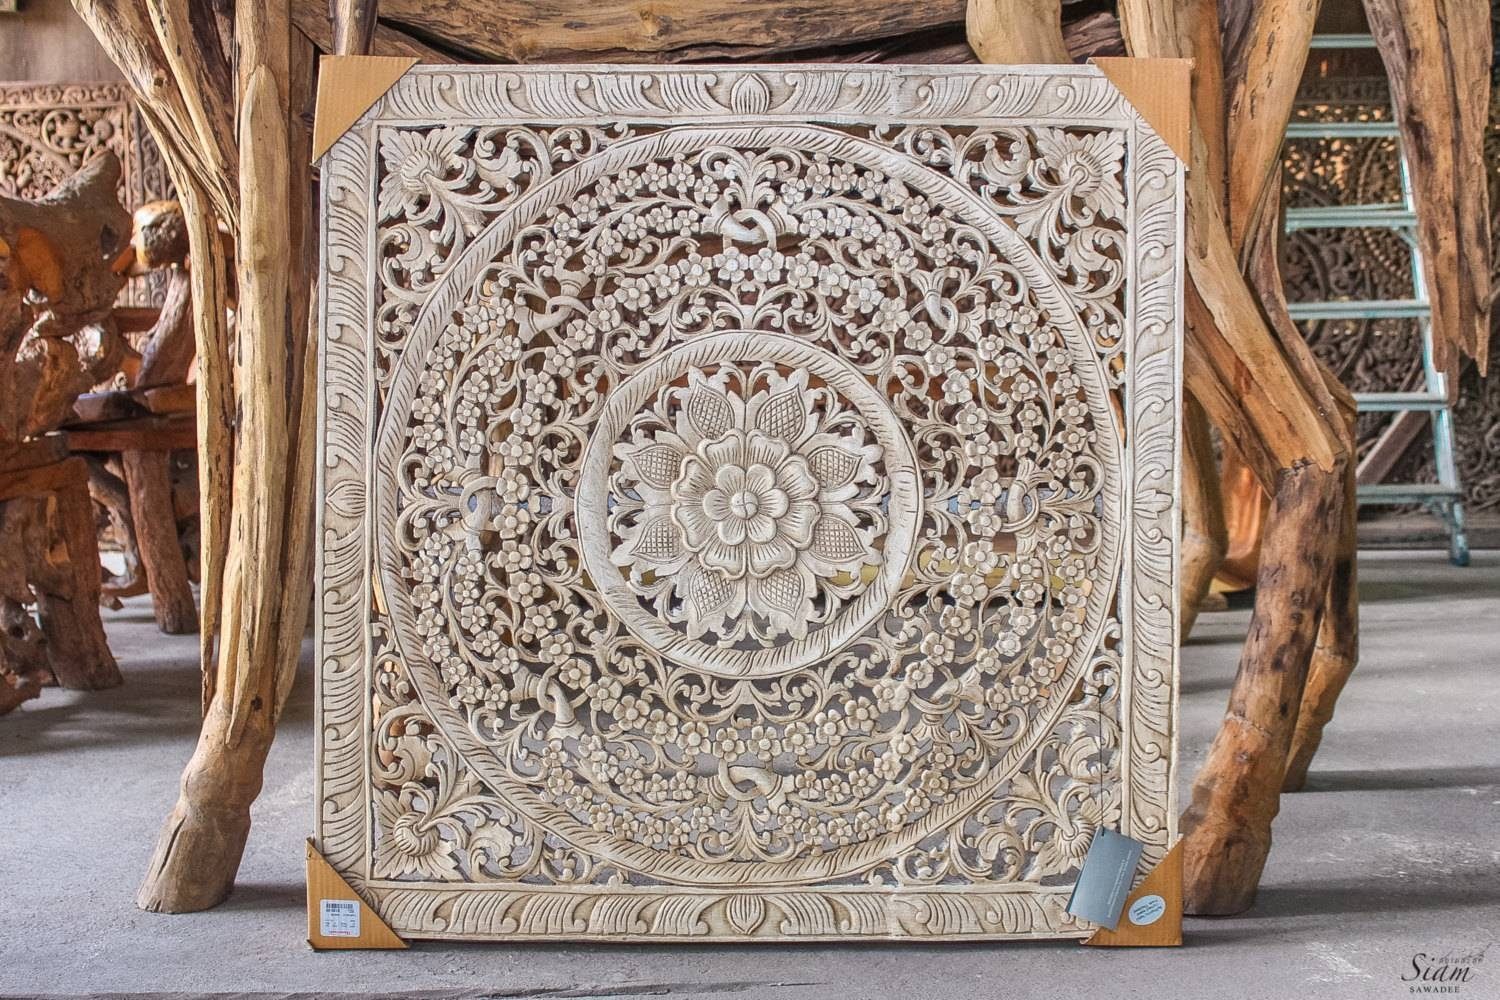 35 Carved Wood Panel Wall Art, Ornate Carved Wood Panel Wall Art Regarding Most Recent Bali Metal Wall Art (View 17 of 20)